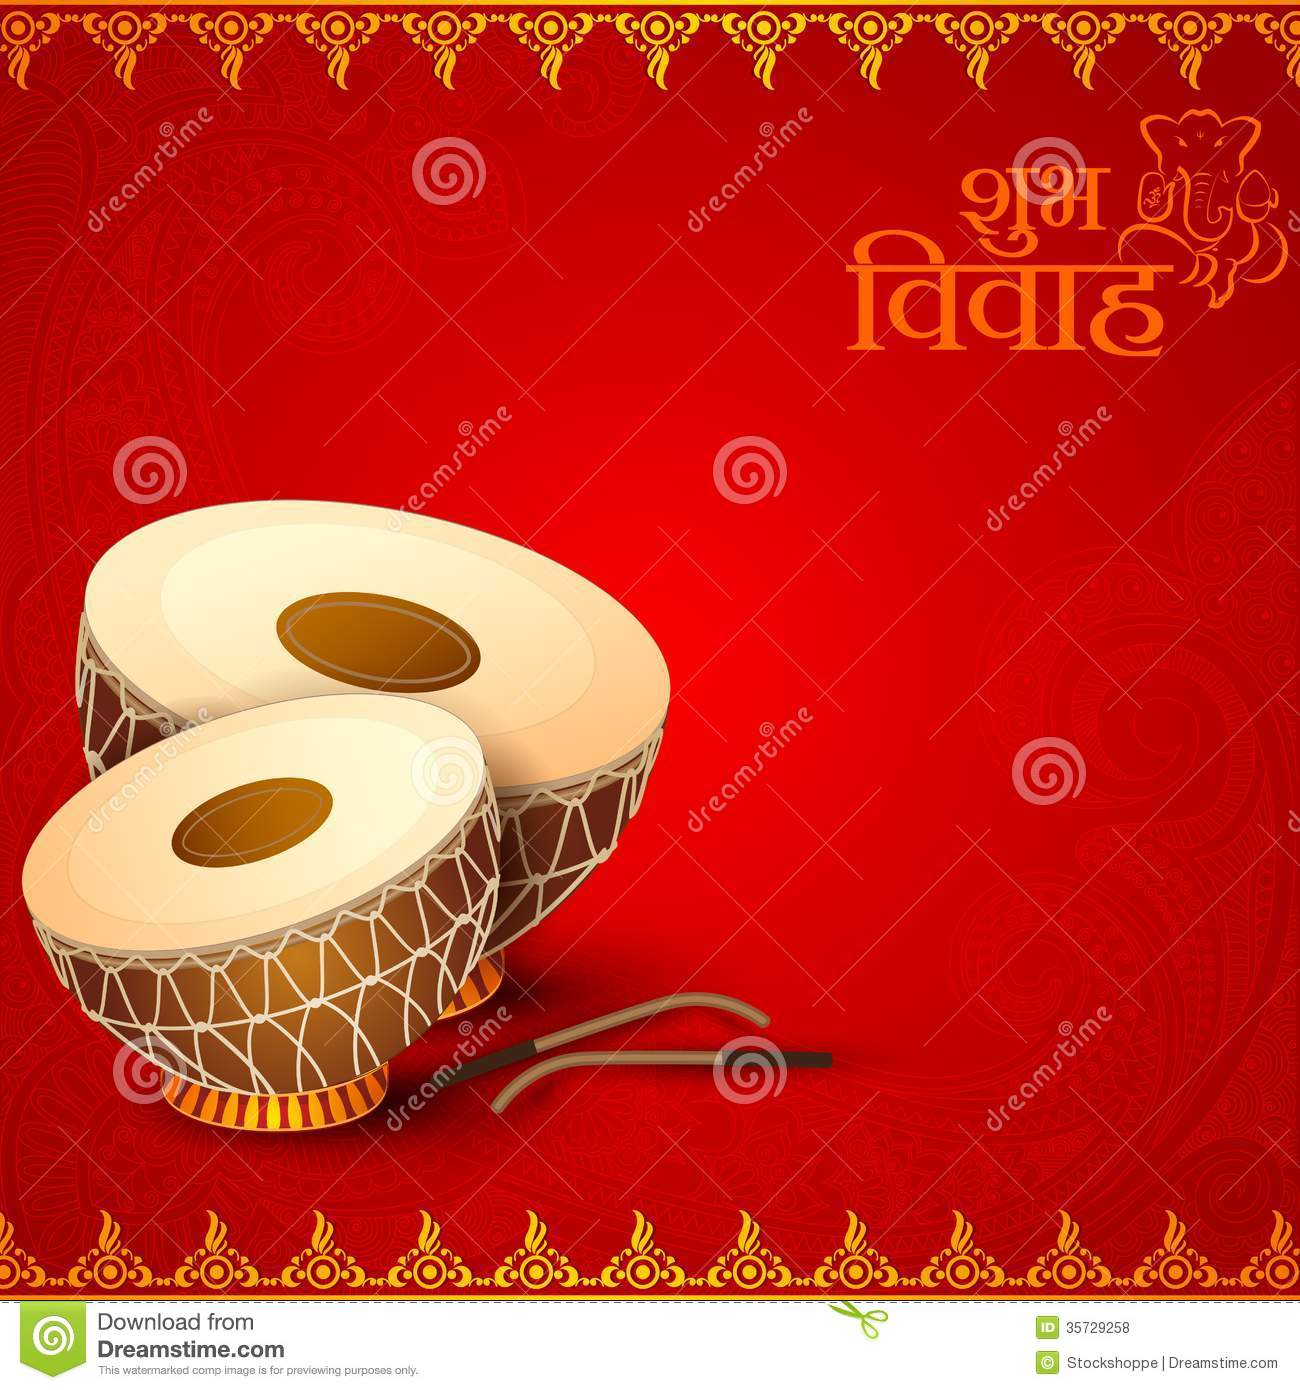 Drum In Indian Wedding Invitation Card Stock Vector - Illustration ...